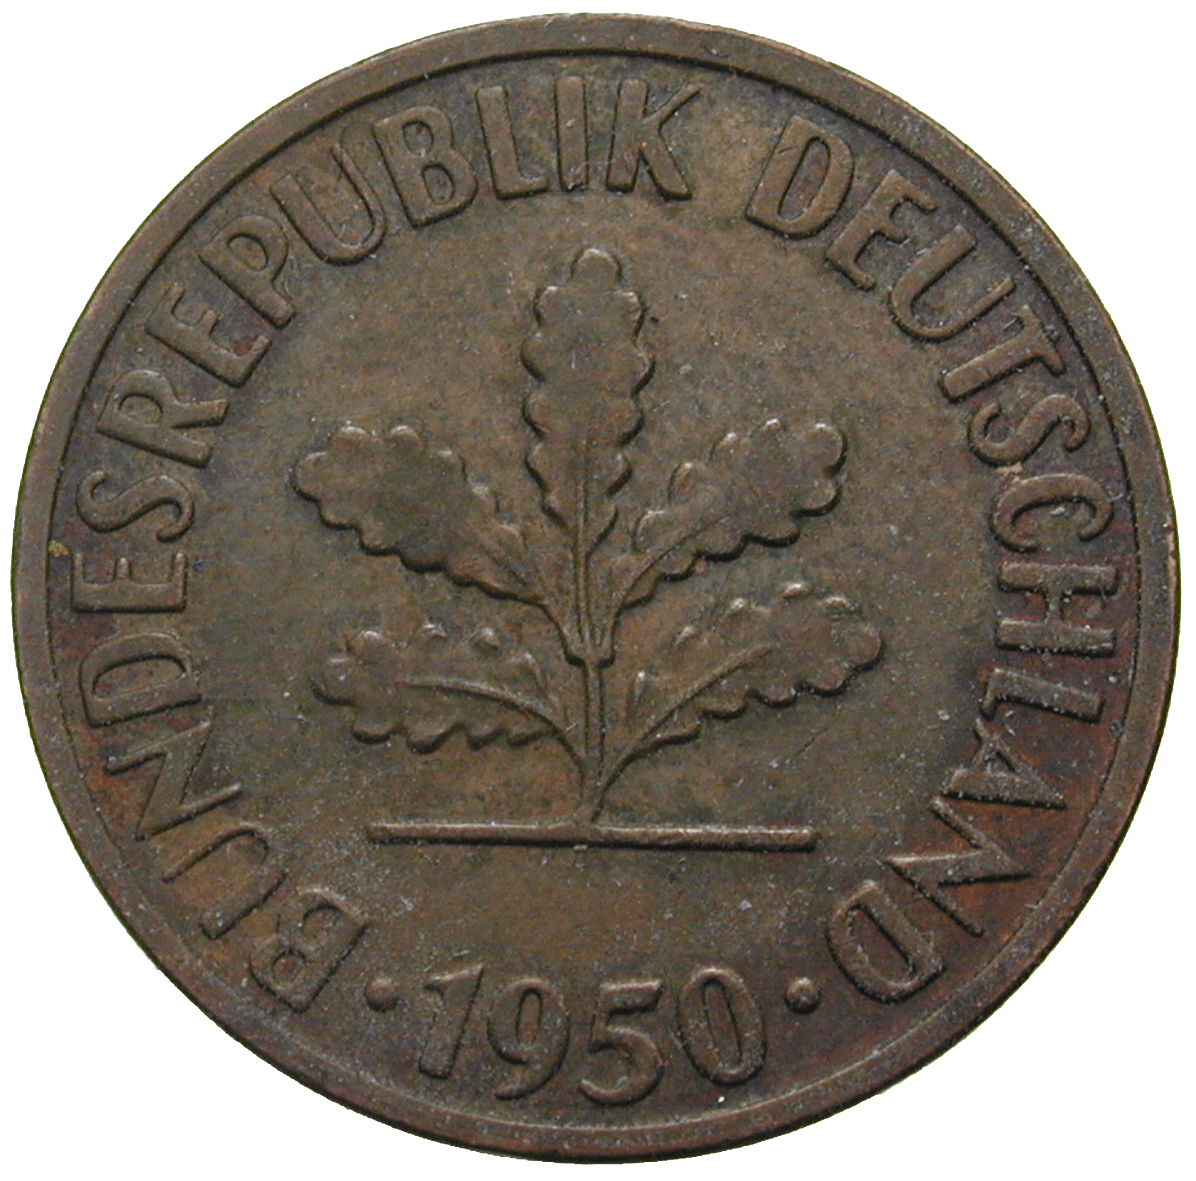 Federal Republic of Germany, 2 Pfennig 1950 (reverse)